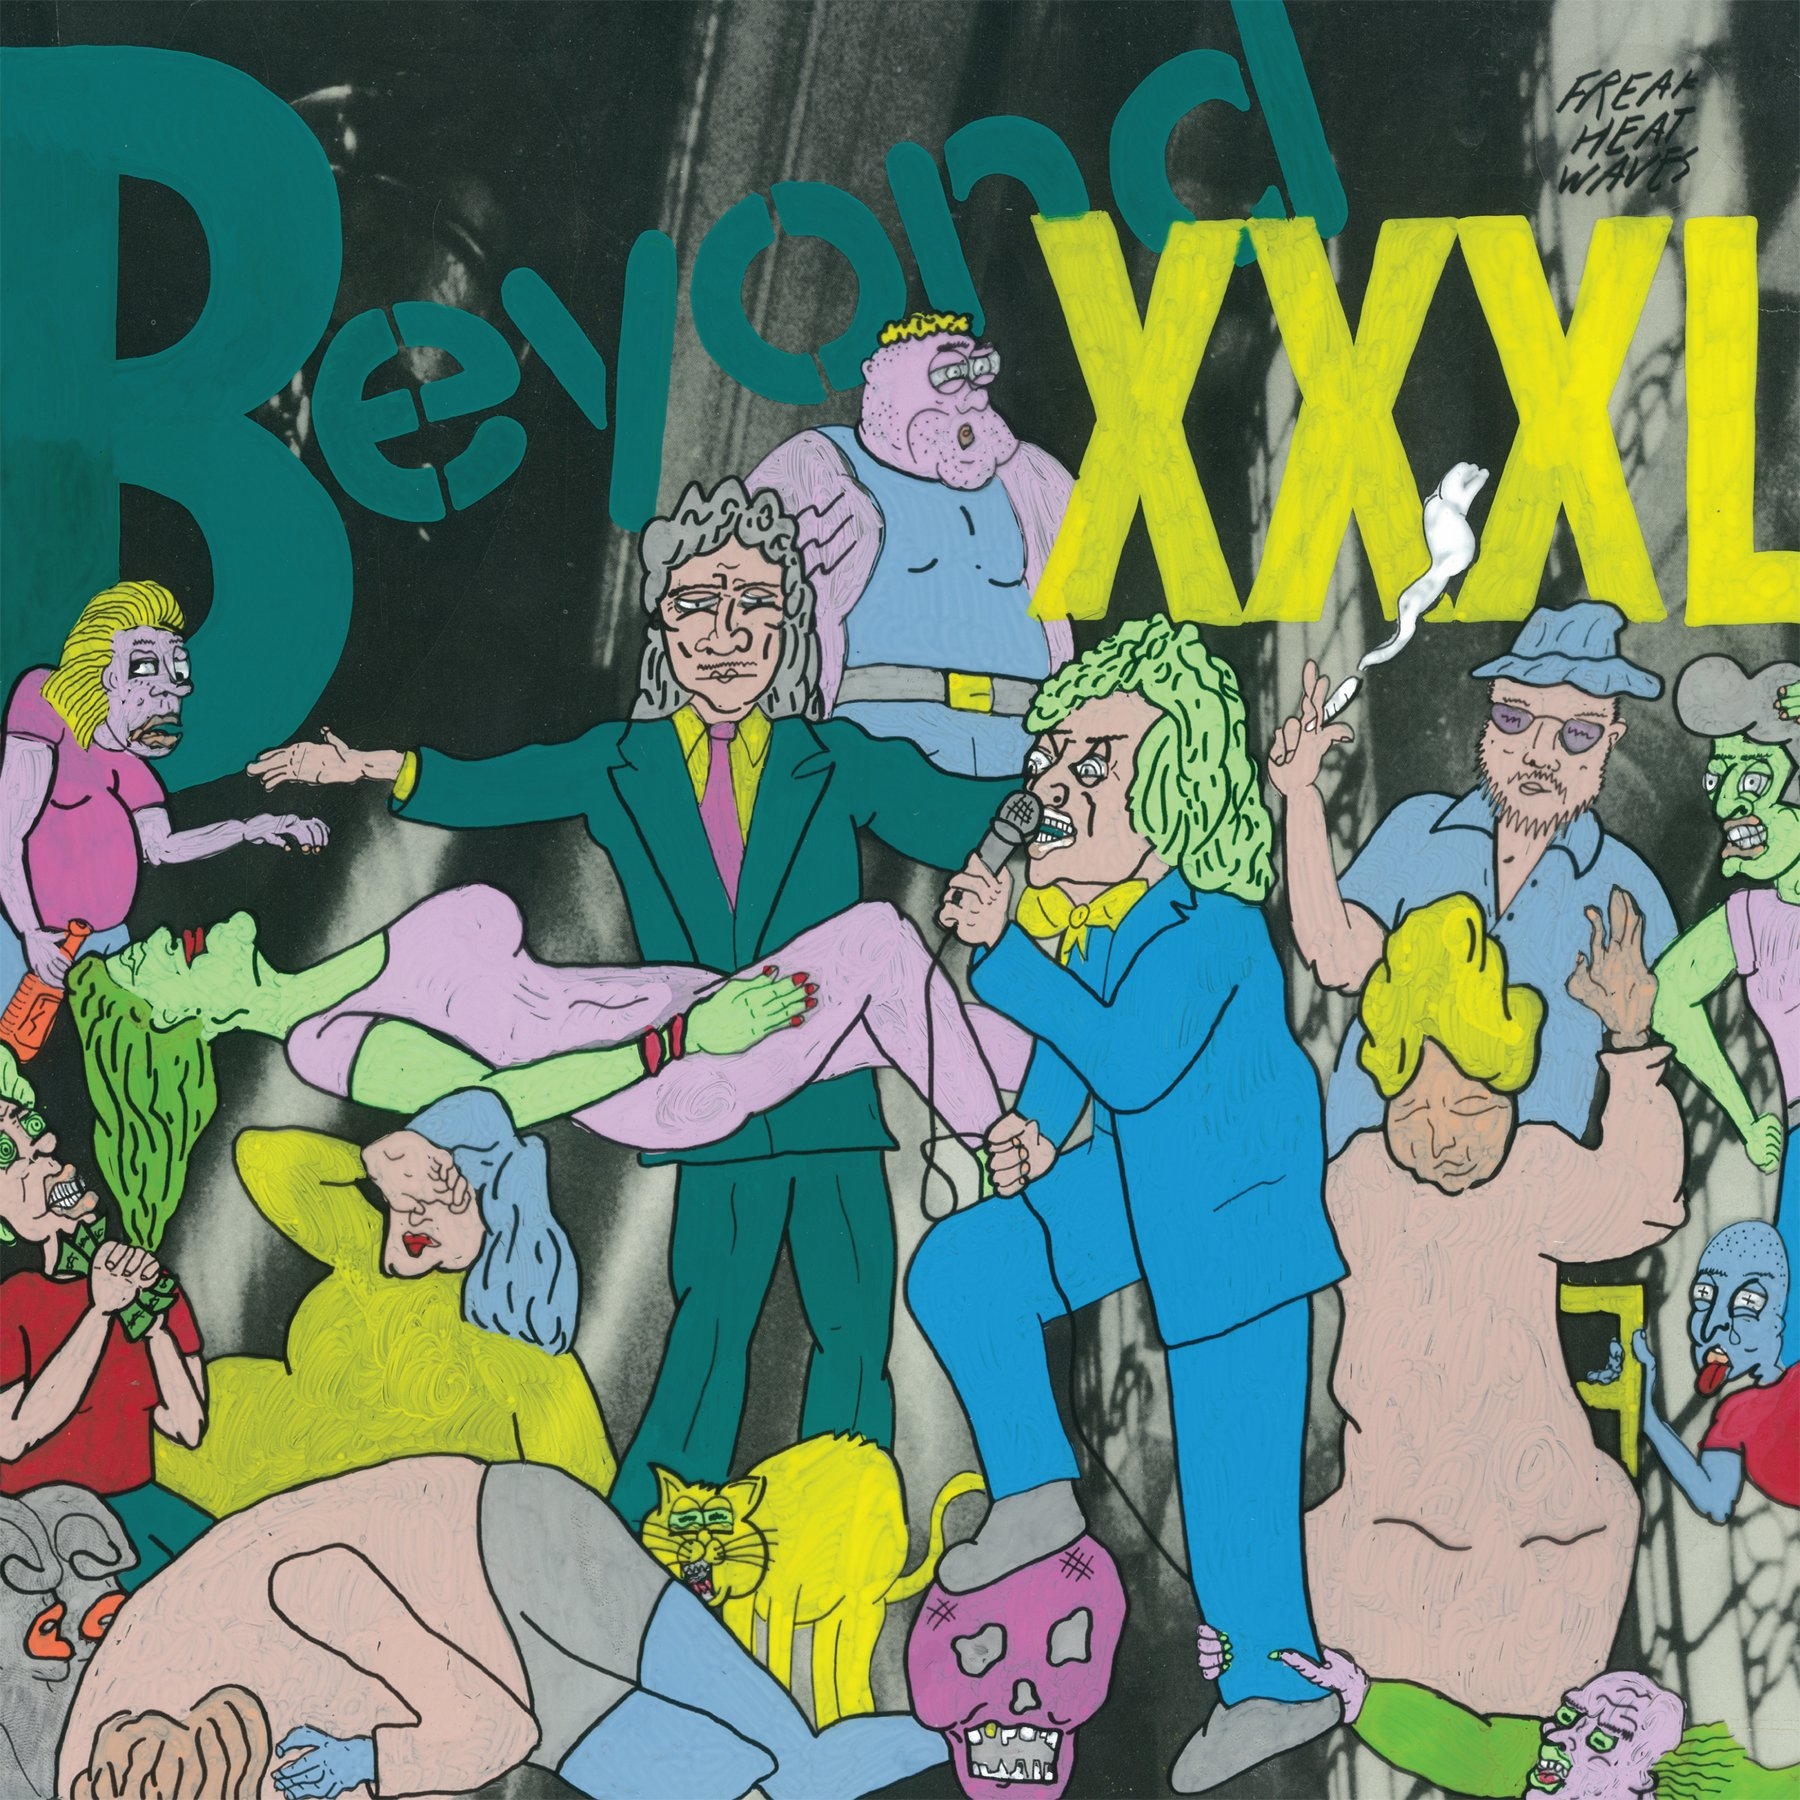 Northern Transmissions review of 'Beyond XXXL' by Freak Heat Waves